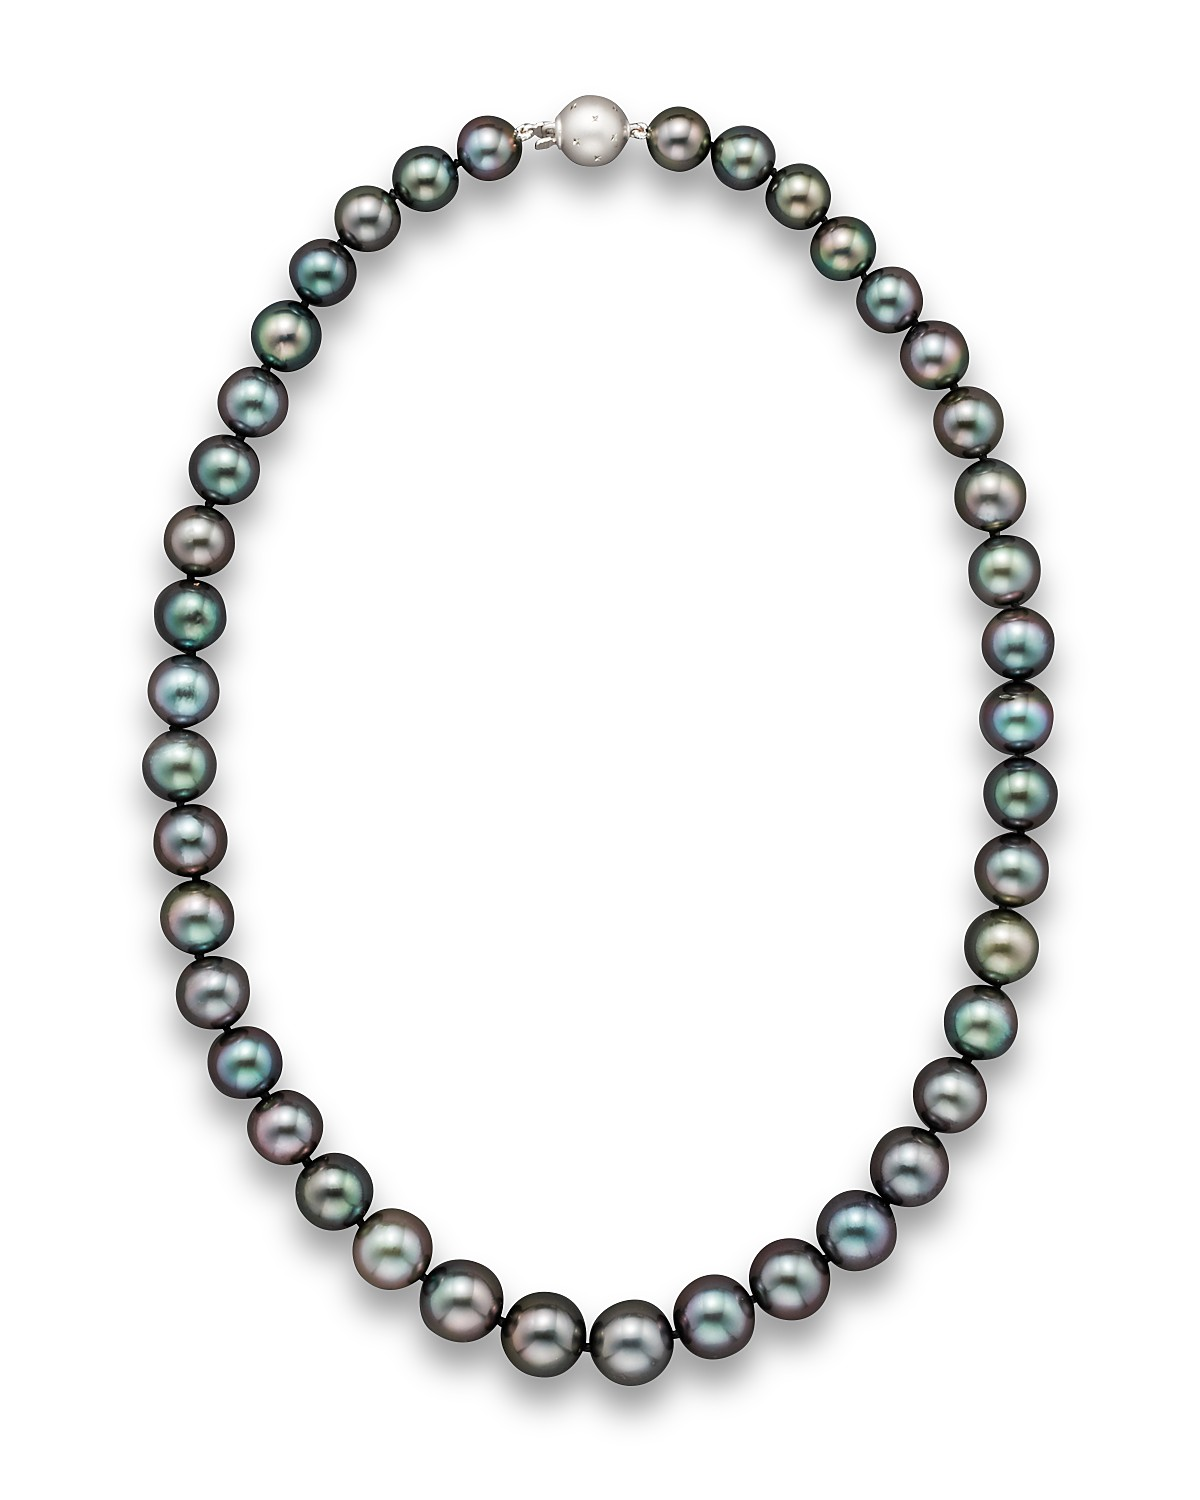 aaa x sea aubergine darkblack tahitian sterling necklace pearl south silver dark whitegold frontview black true